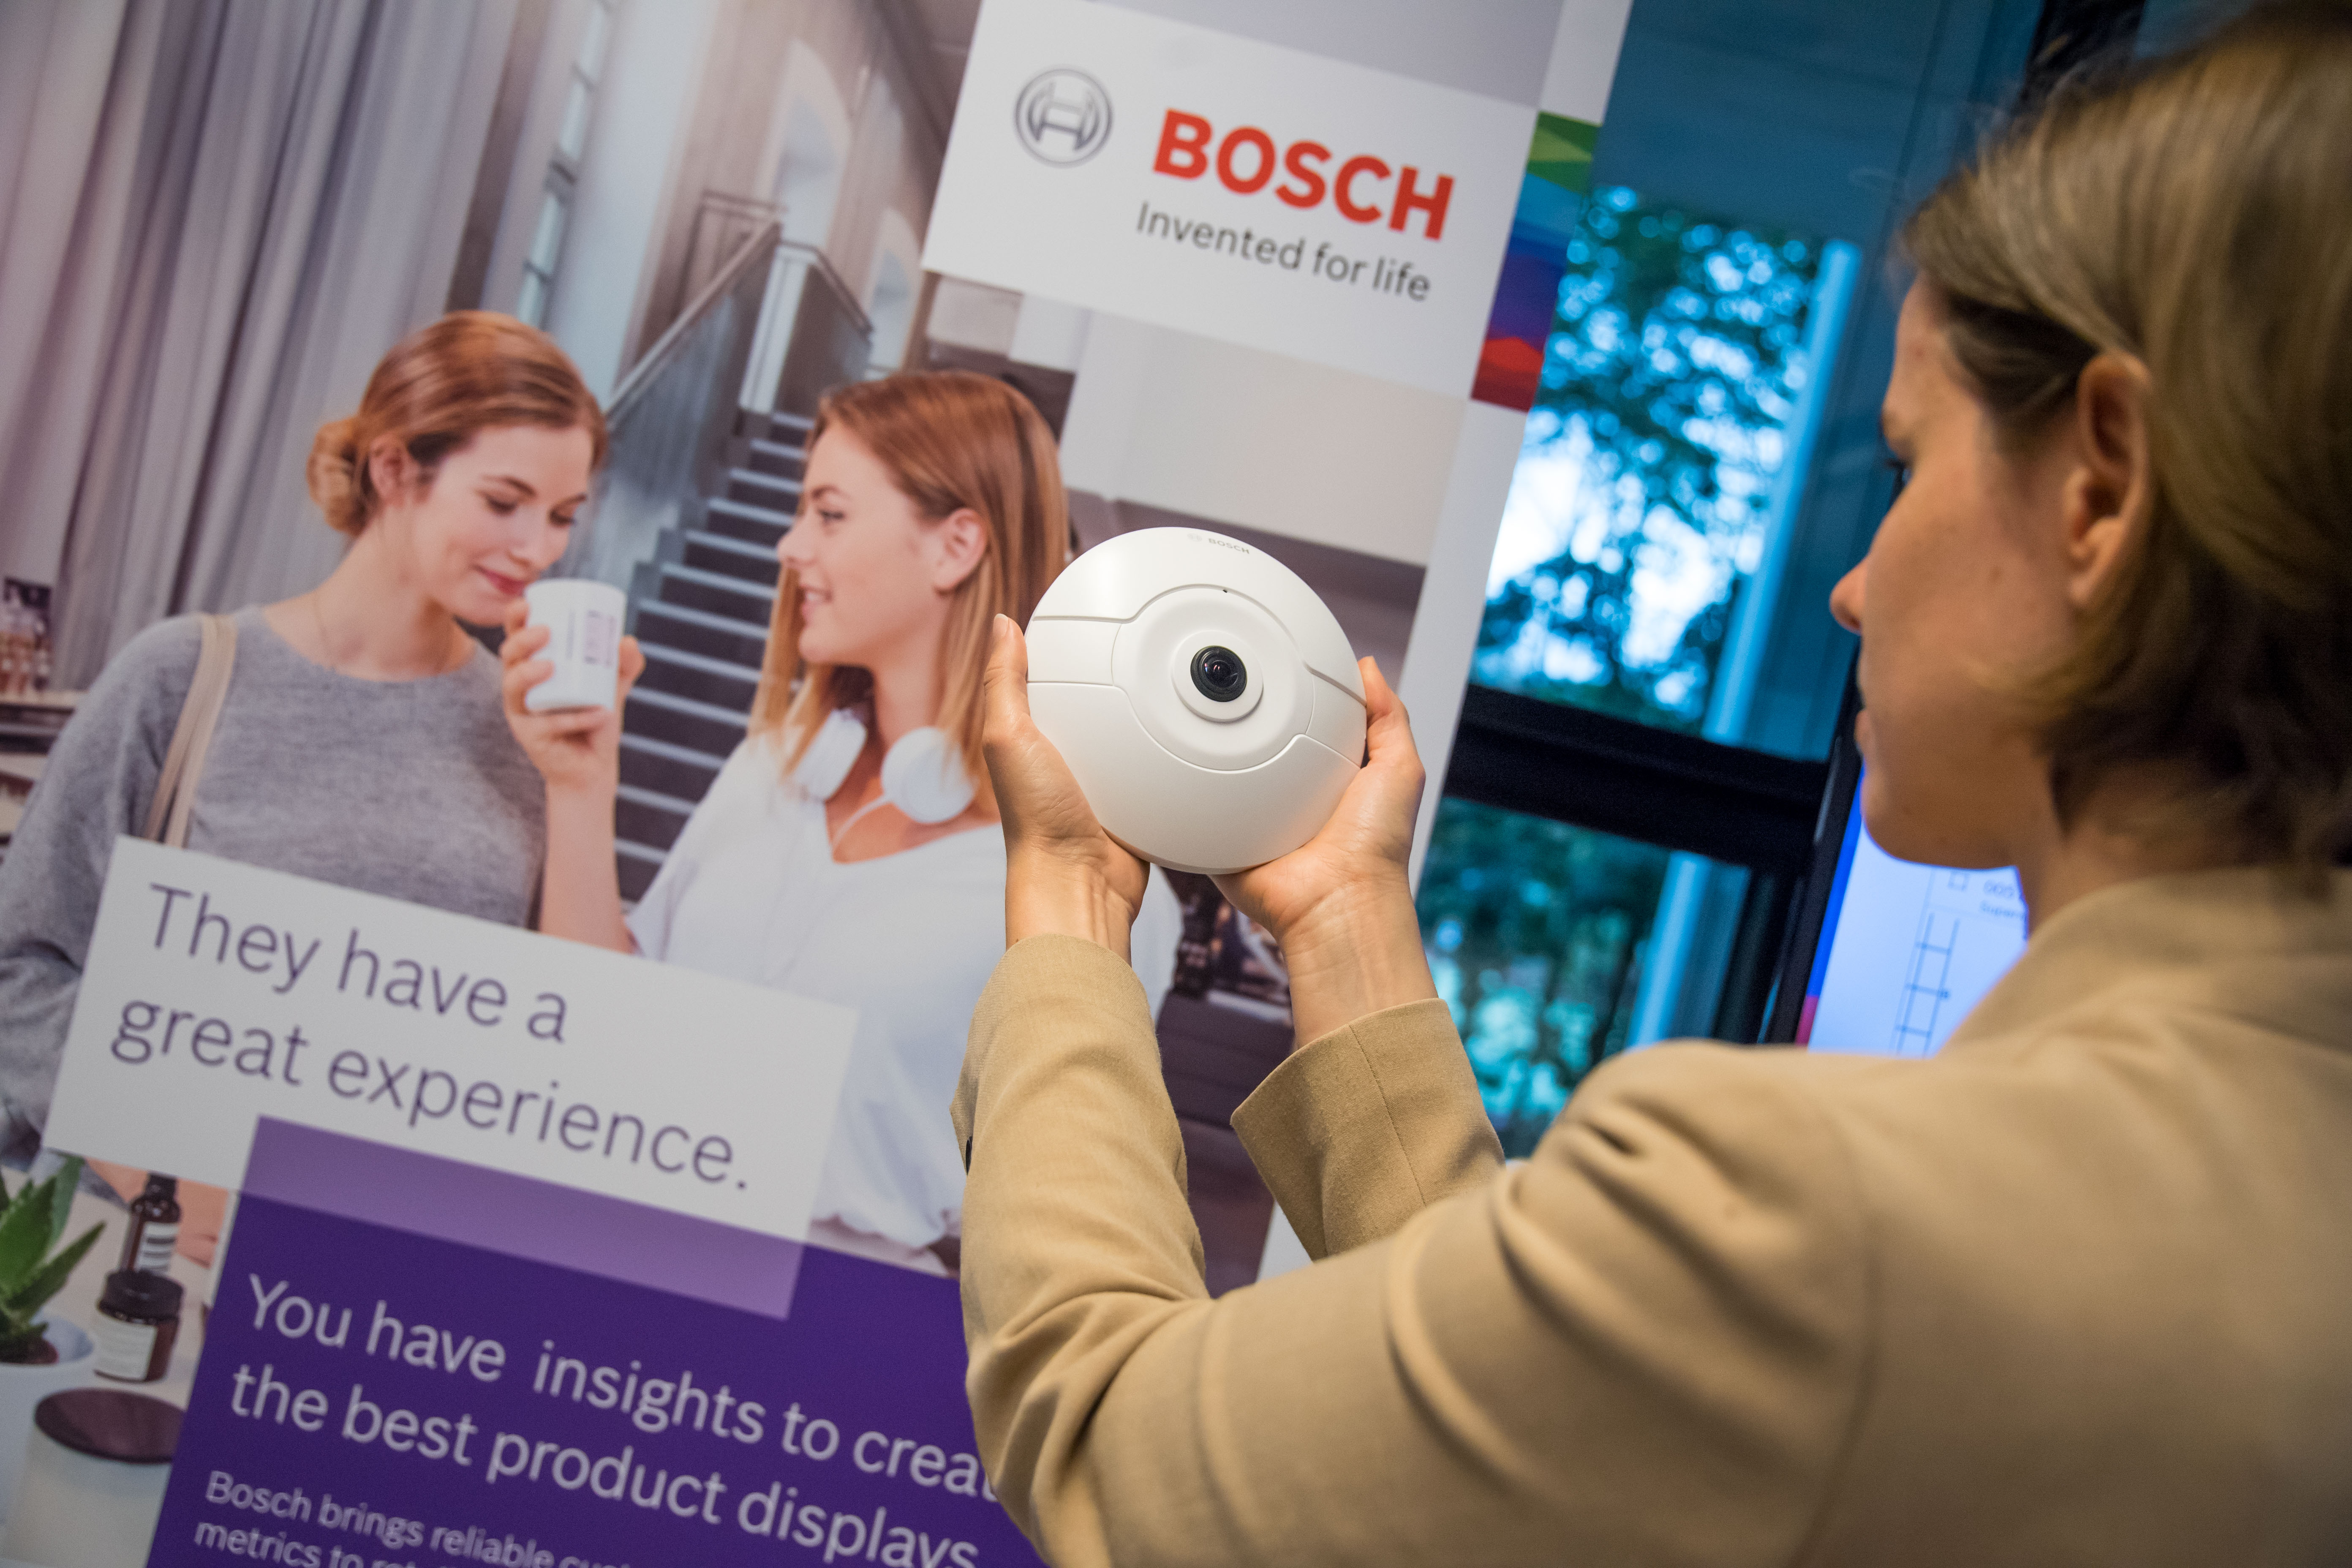 Pressegespräch Bosch Energy and Building Technology 2017